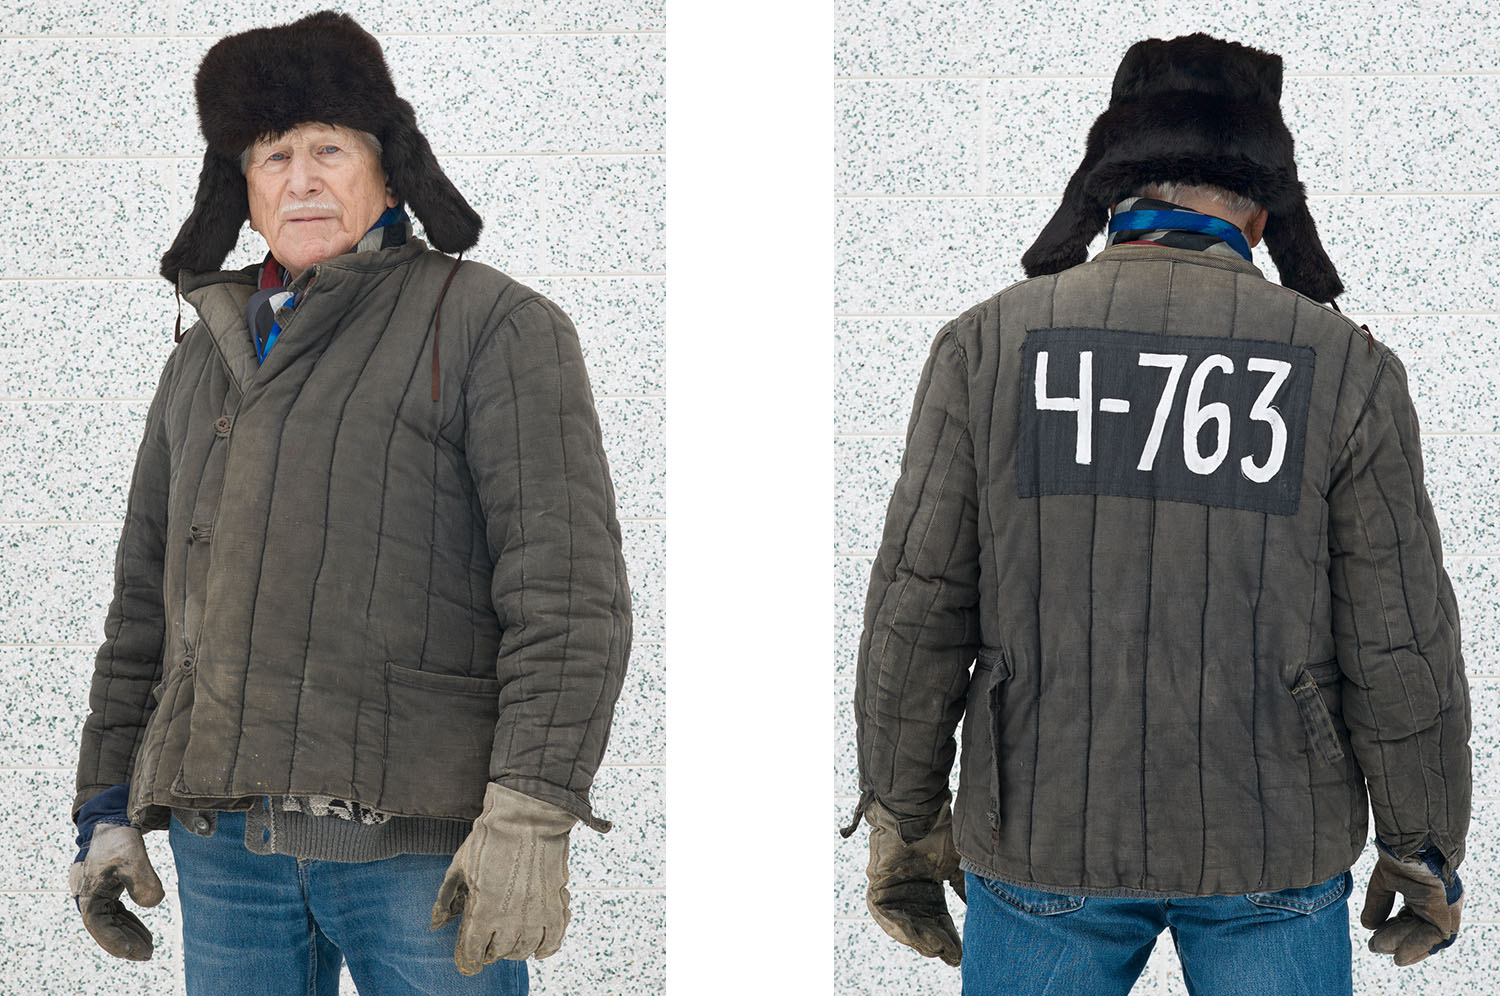 Lothar Scholz spent 9 years in a prison camp in Siberia